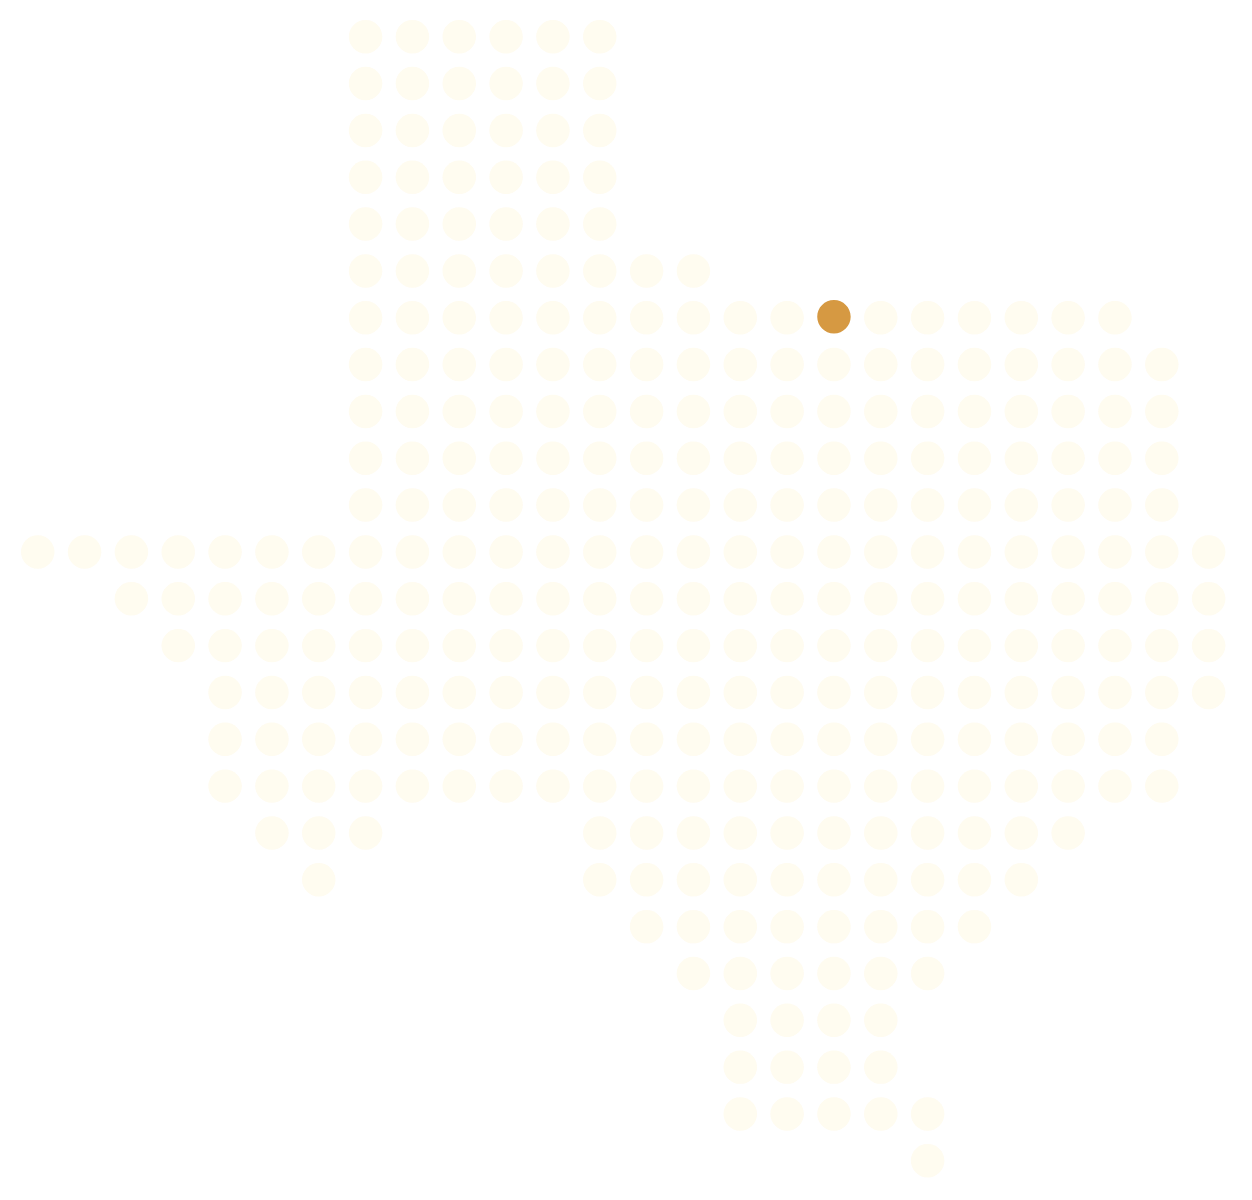 north-texas-service-areas-montague-white.png